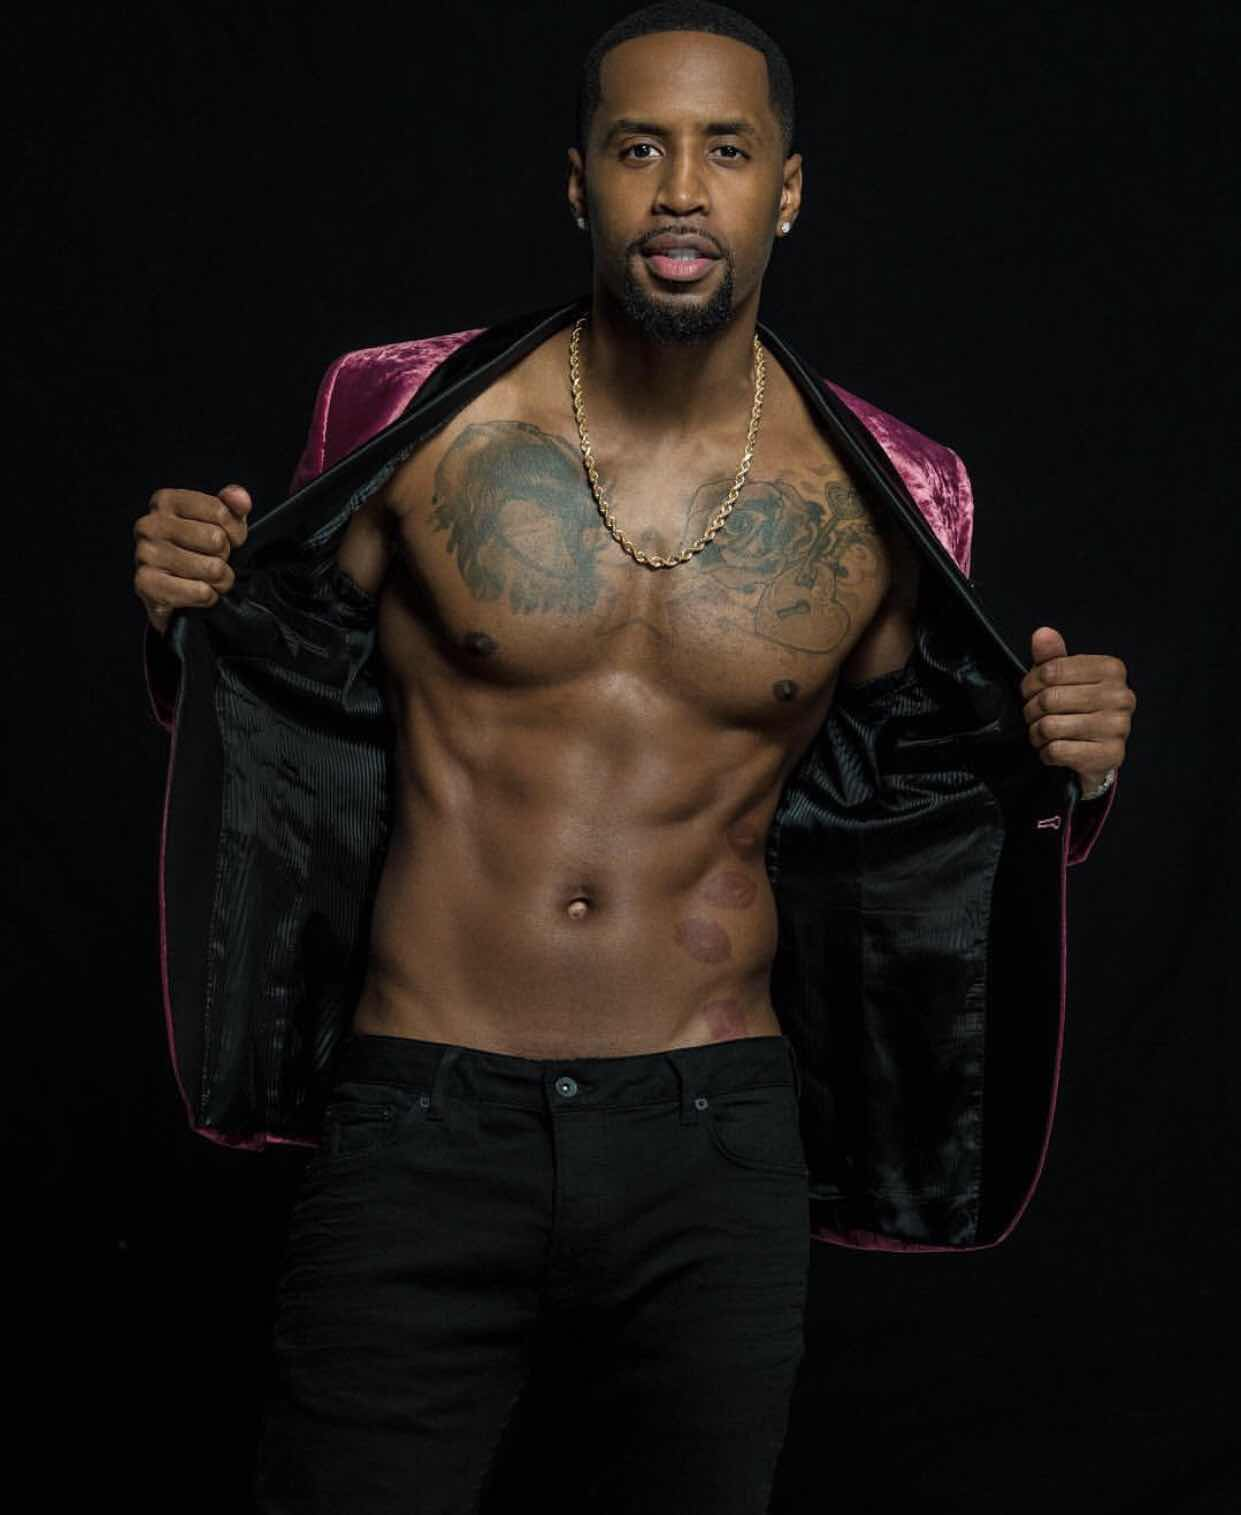 Safaree Is Proud Of His Achievements And Offers His Gratitude For All He Has